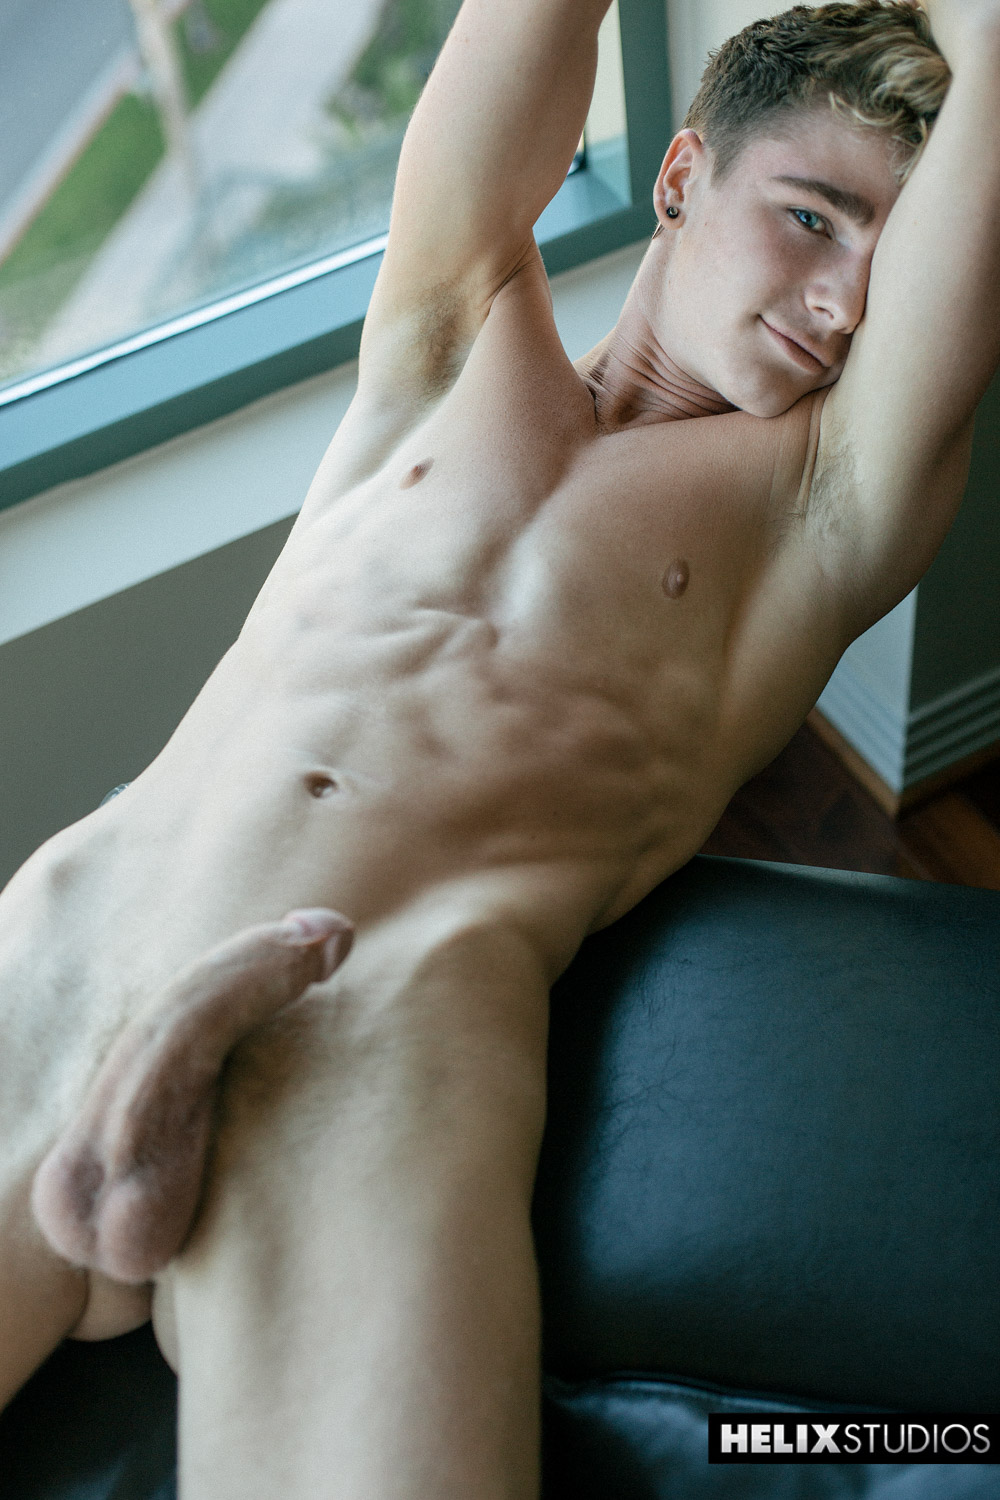 image Twinks tight shorts gay porn hot download